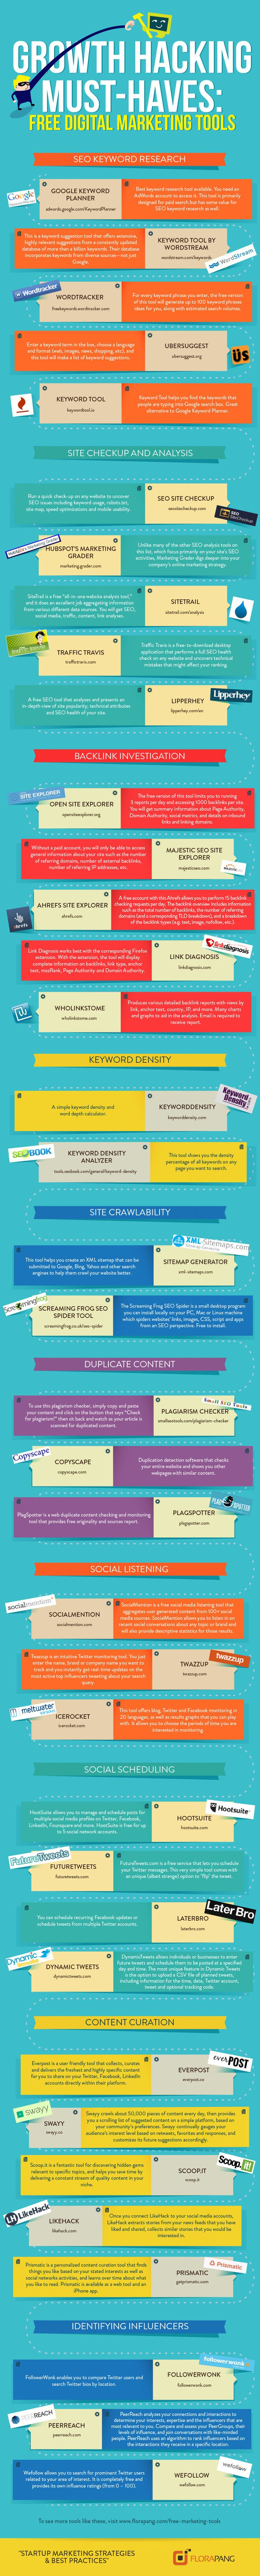 Growth Hacking Must-Haves: Free Digital Marketing Tools #infographic #Marketing #Startup #GrowthHacking